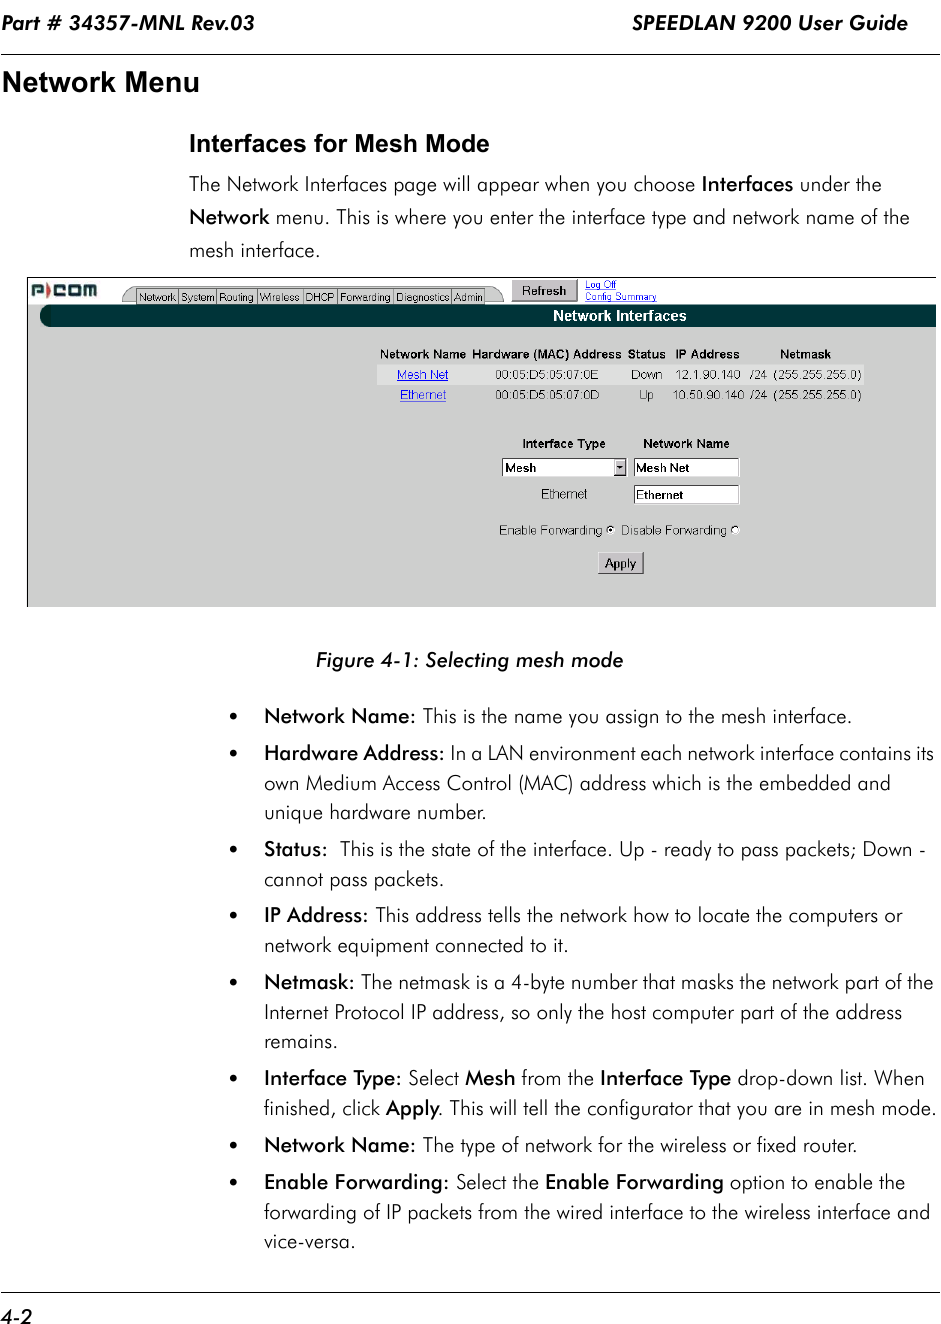 Part # 34357-MNL Rev.03                                                             SPEEDLAN 9200 User Guide 4-2Network MenuInterfaces for Mesh ModeThe Network Interfaces page will appear when you choose Interfaces under the Network menu. This is where you enter the interface type and network name of the mesh interface.    Figure 4-1: Selecting mesh mode•Network Name: This is the name you assign to the mesh interface.•Hardware Address: In a LAN environment each network interface contains its own Medium Access Control (MAC) address which is the embedded and unique hardware number. •Status:  This is the state of the interface. Up - ready to pass packets; Down - cannot pass packets.•IP Address: This address tells the network how to locate the computers or network equipment connected to it.  •Netmask: The netmask is a 4-byte number that masks the network part of the Internet Protocol IP address, so only the host computer part of the address remains.•Interface Type: Select Mesh from the Interface Type drop-down list. When finished, click Apply. This will tell the configurator that you are in mesh mode.•Network Name: The type of network for the wireless or fixed router. •Enable Forwarding: Select the Enable Forwarding option to enable the forwarding of IP packets from the wired interface to the wireless interface and vice-versa.